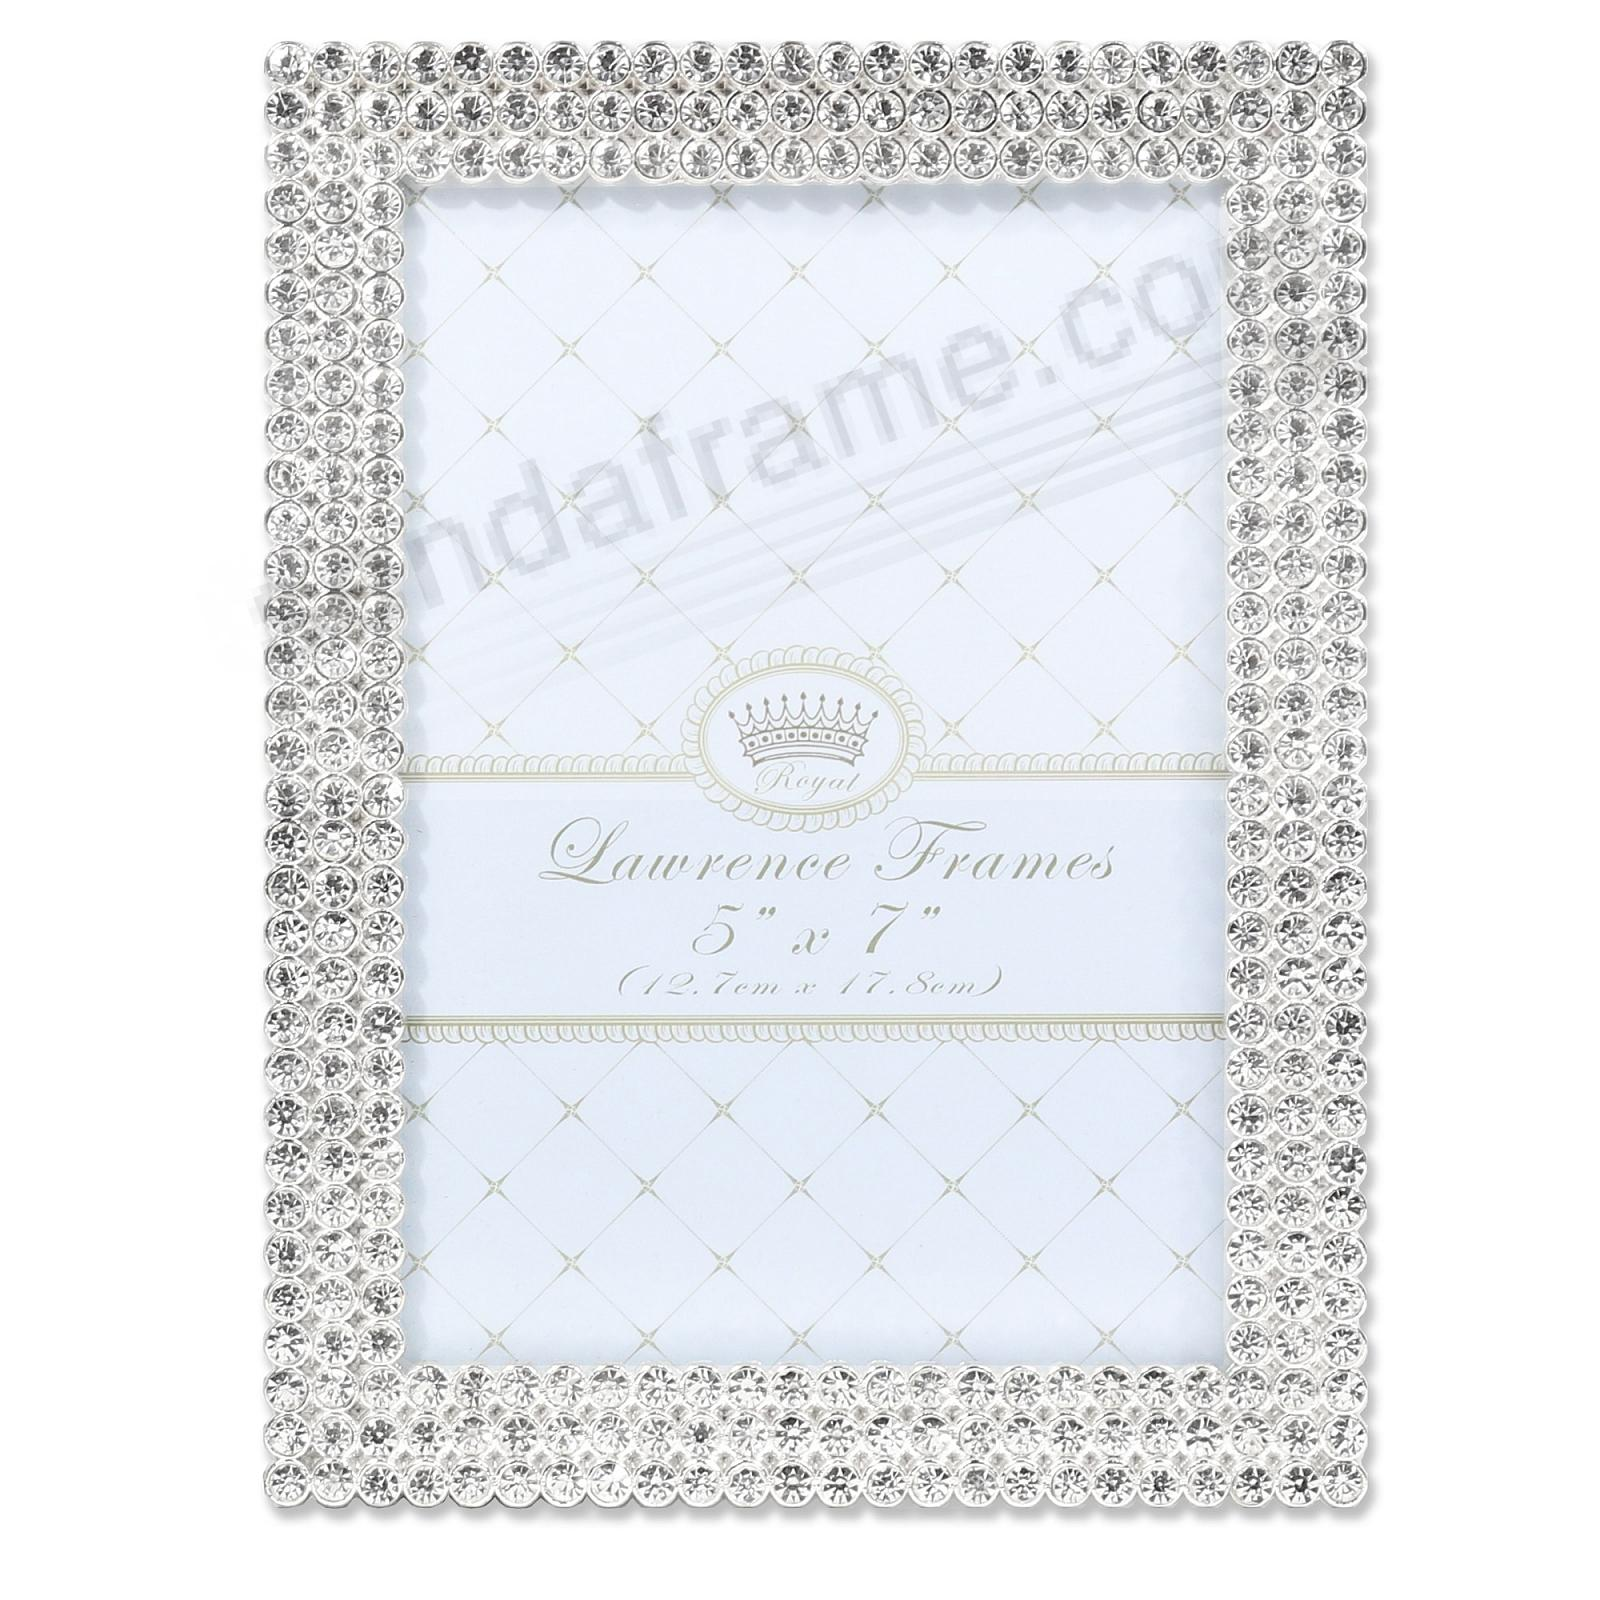 JULIET WHITE CRYSTAL JEWELS + SILVER 5x7 frame